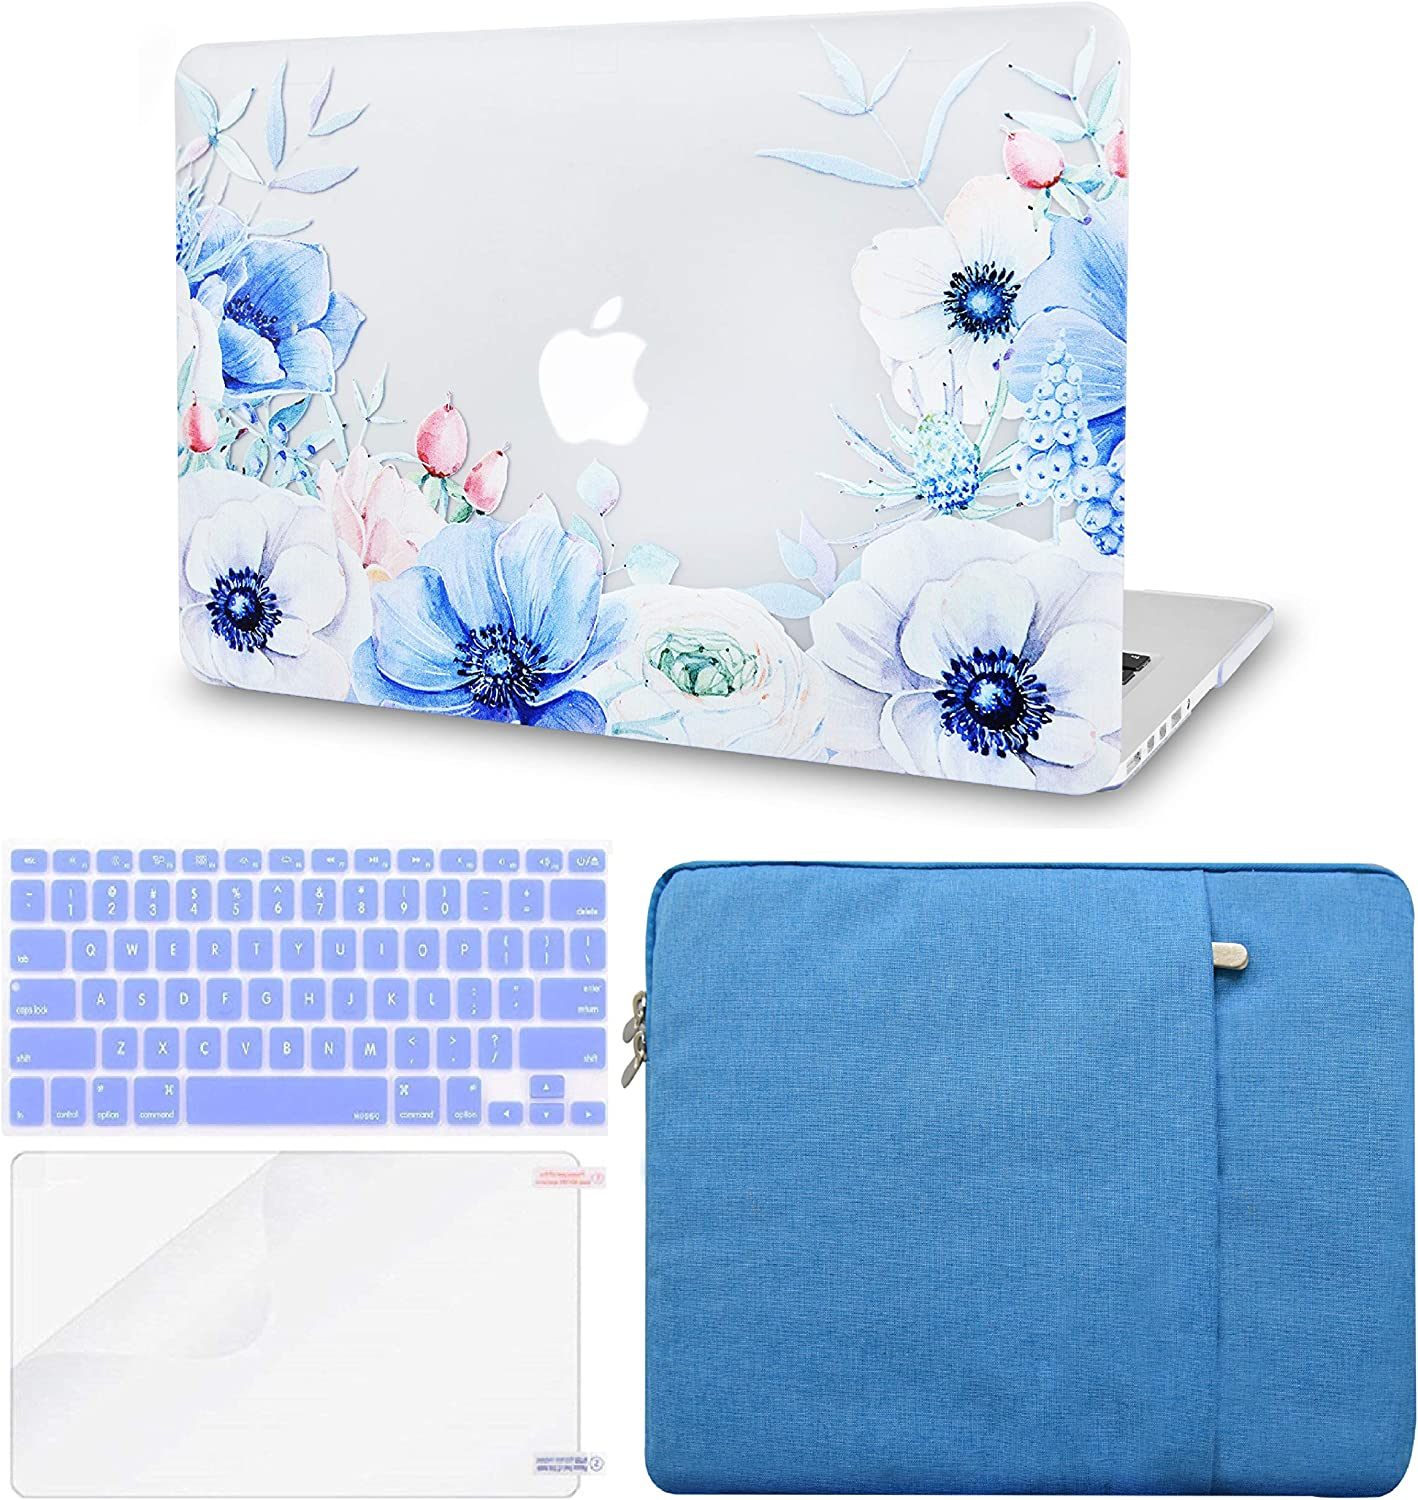 LuvCase 4 in 1 Laptop Case Compatible with MacBookAir 13 Inch (2010-2017) A1466/A1369 (No Touch ID) HardShellCover, Sleeve, Keyboard Cover & Screen Protector(Blue and White Poppy)